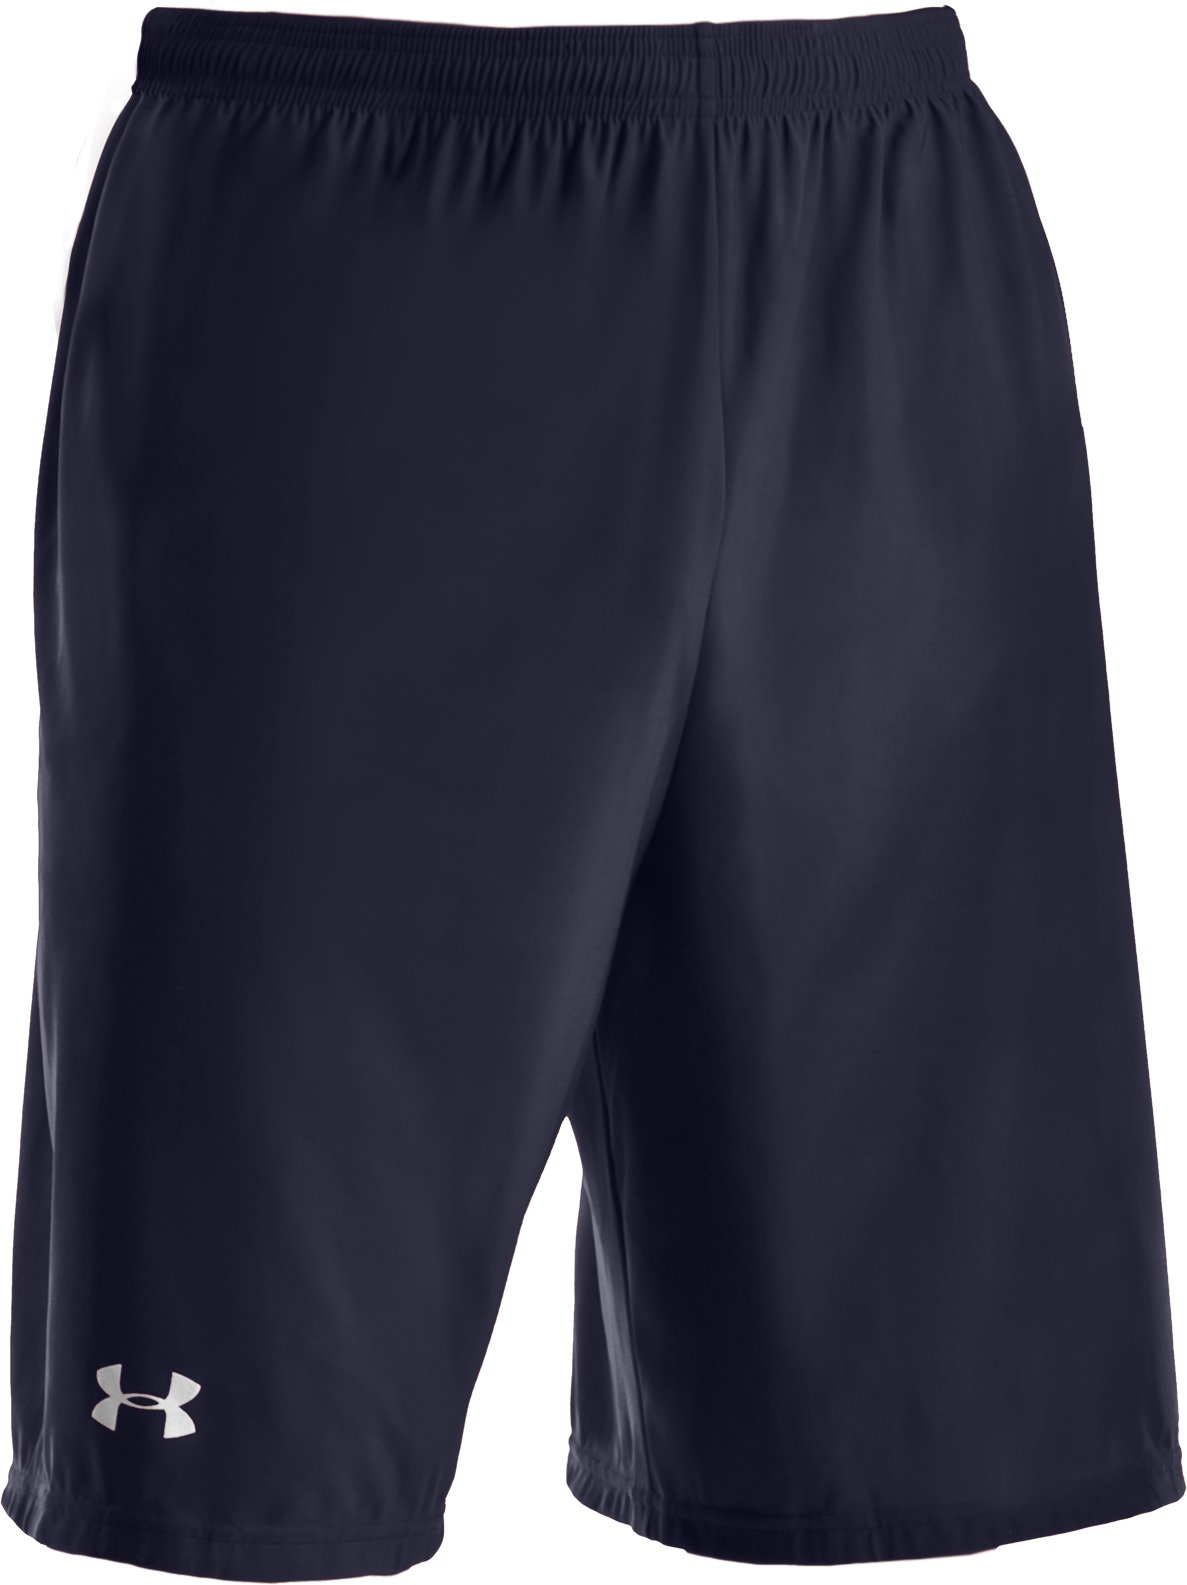 Men's UA Team Micro Shorts, Midnight Navy